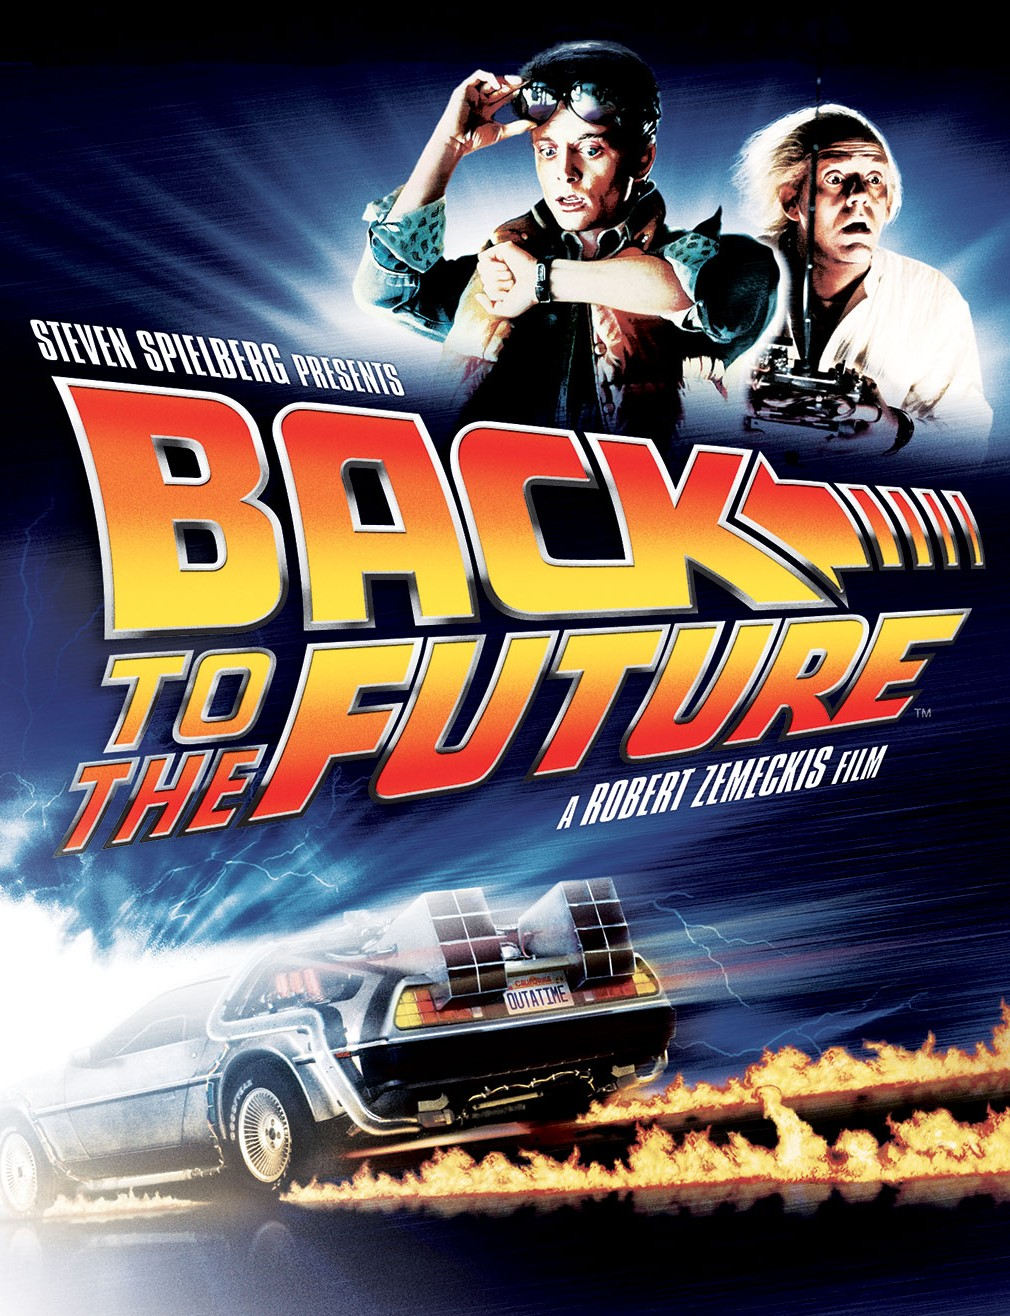 back-to-the-future-poster-large-e1425498204820